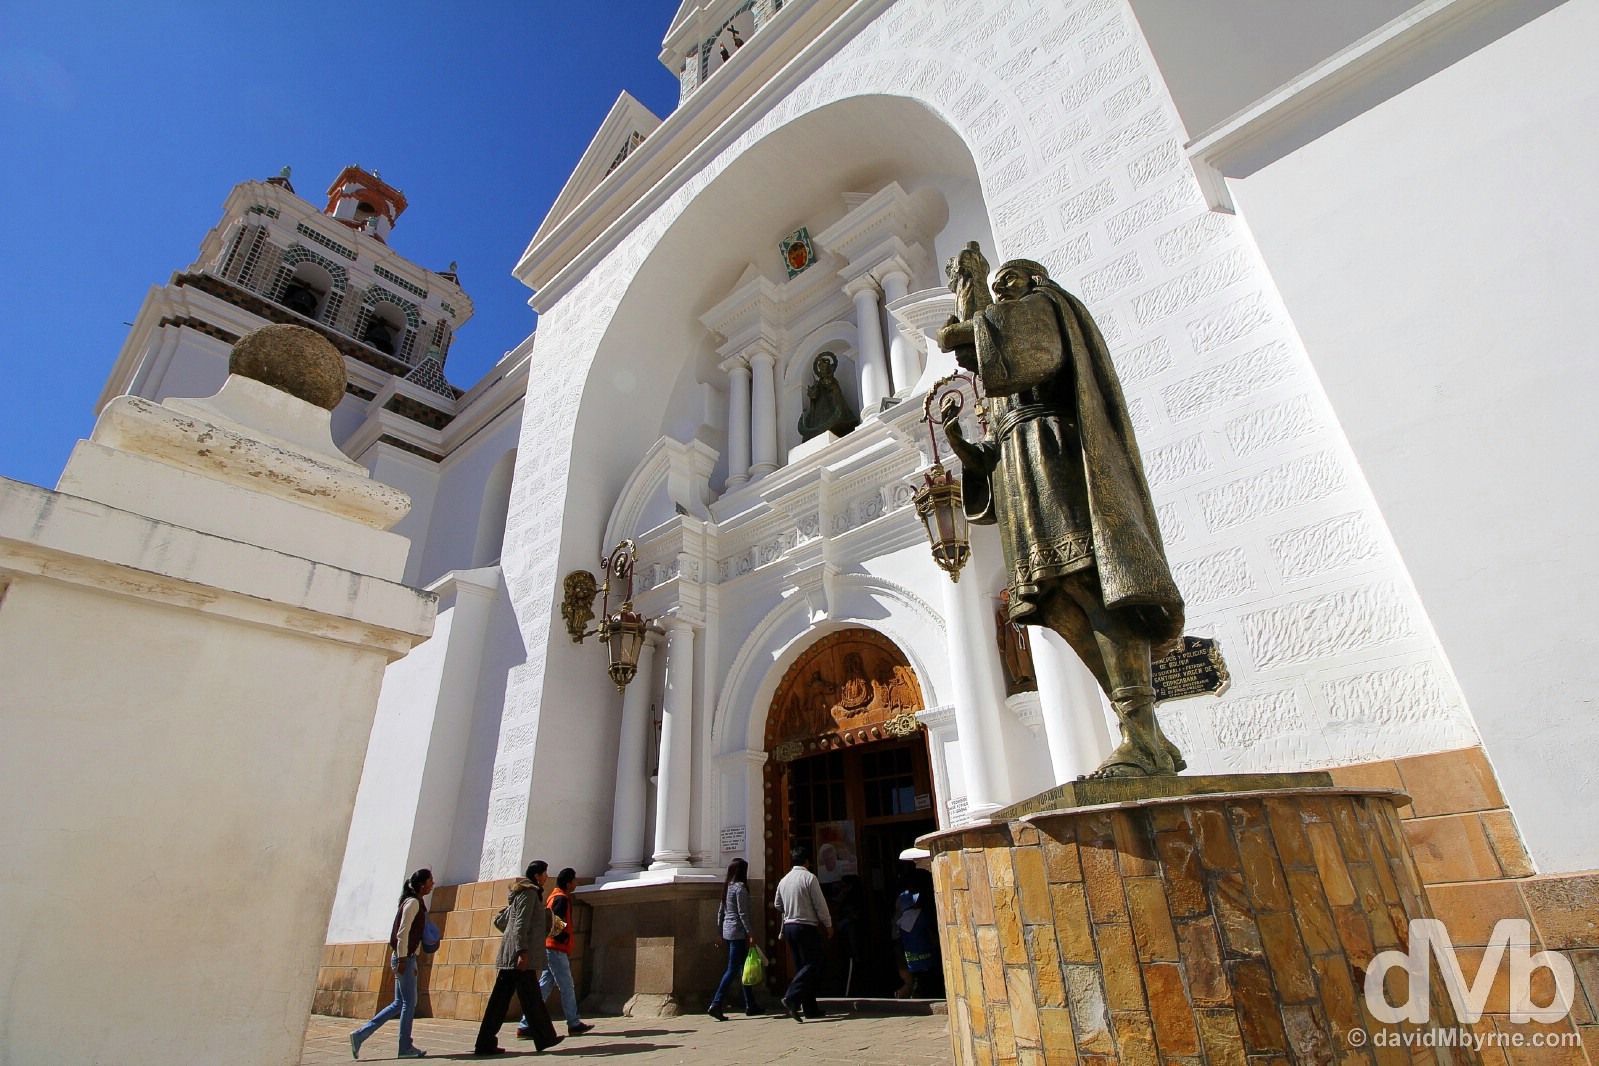 The Catedral in Copacabana, Bolivia. August 23, 2015.